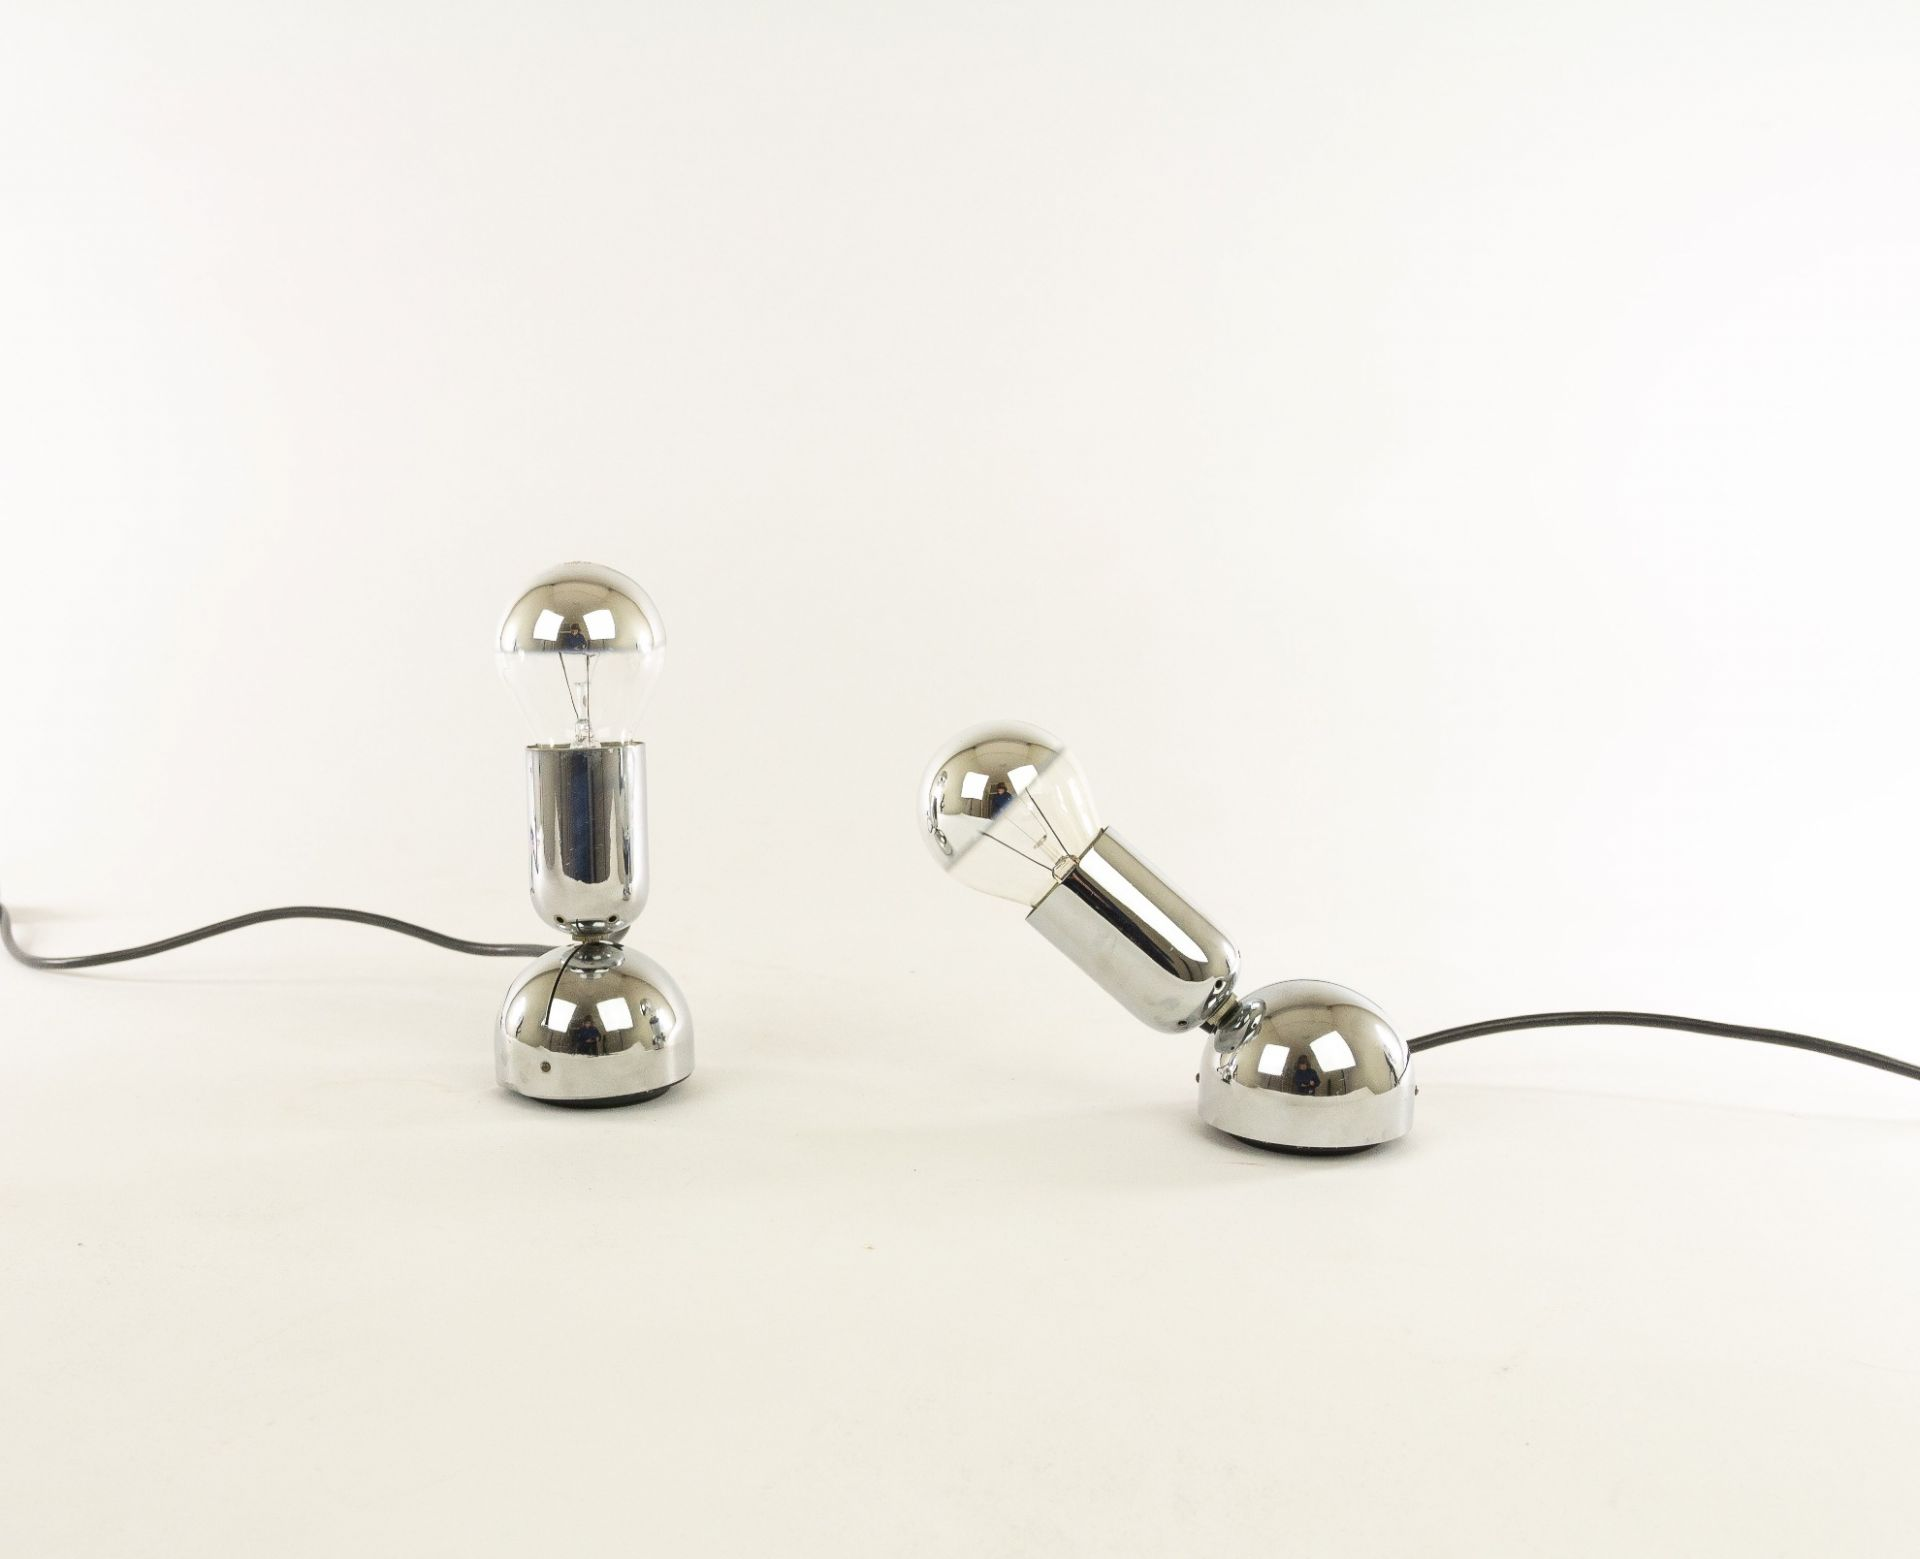 A pair of chrome table or wall lamps model Pollux by Ingo Maurer for Design M, 1